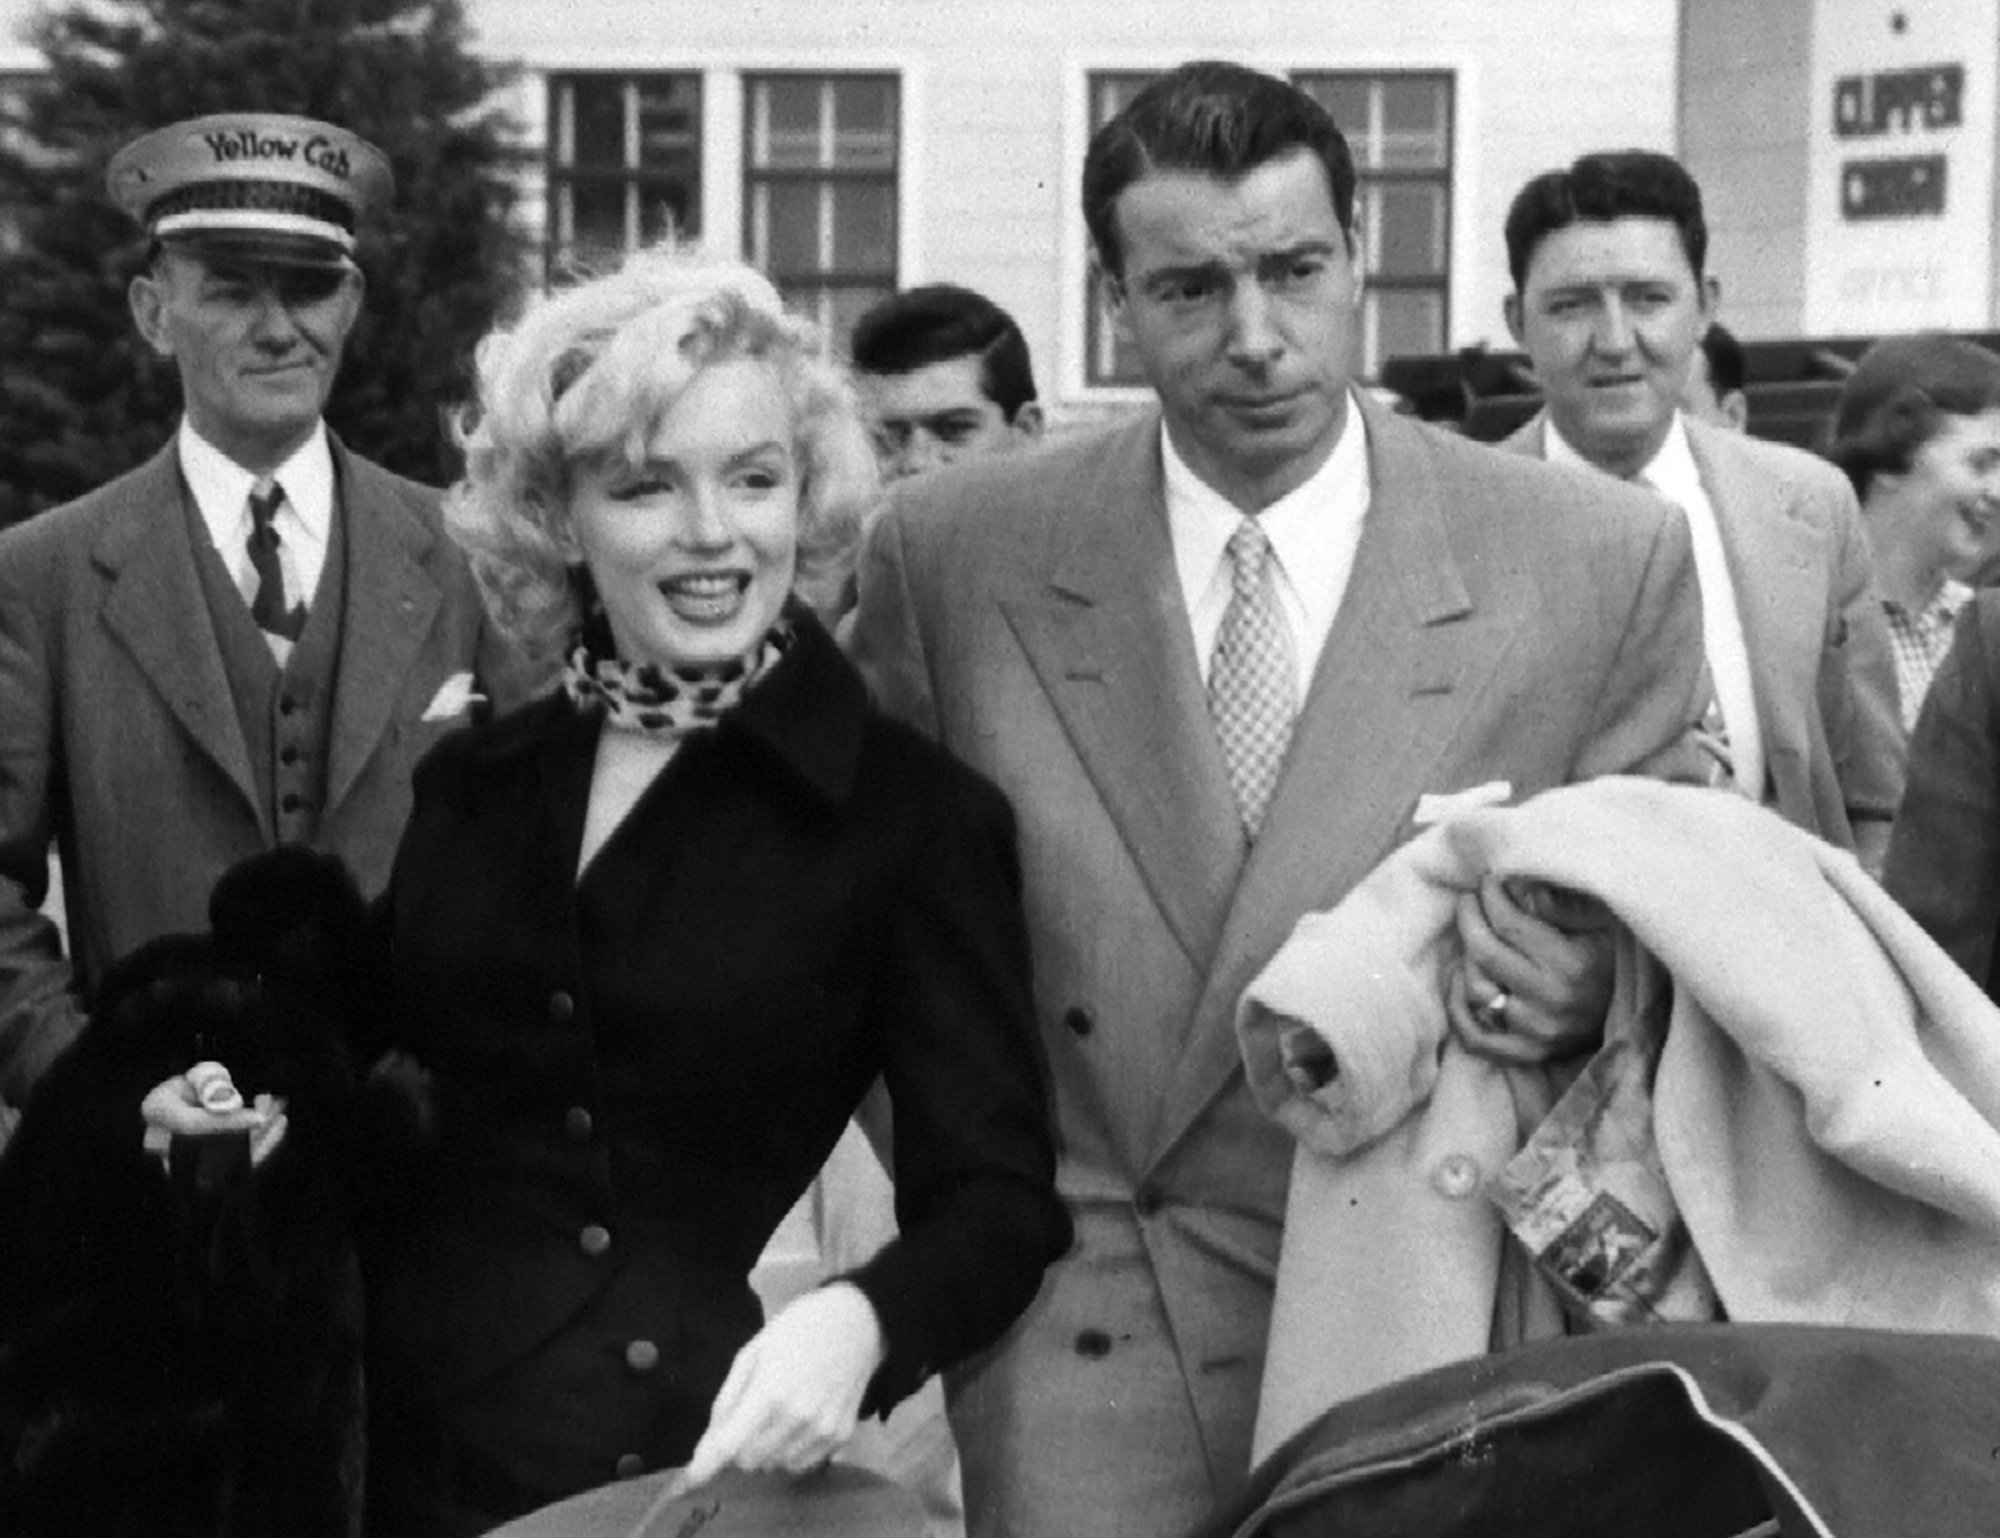 https://www.pbs.org/wgbh/americanexperience/features/dimaggio-meeting-marilyn-and-wedding/